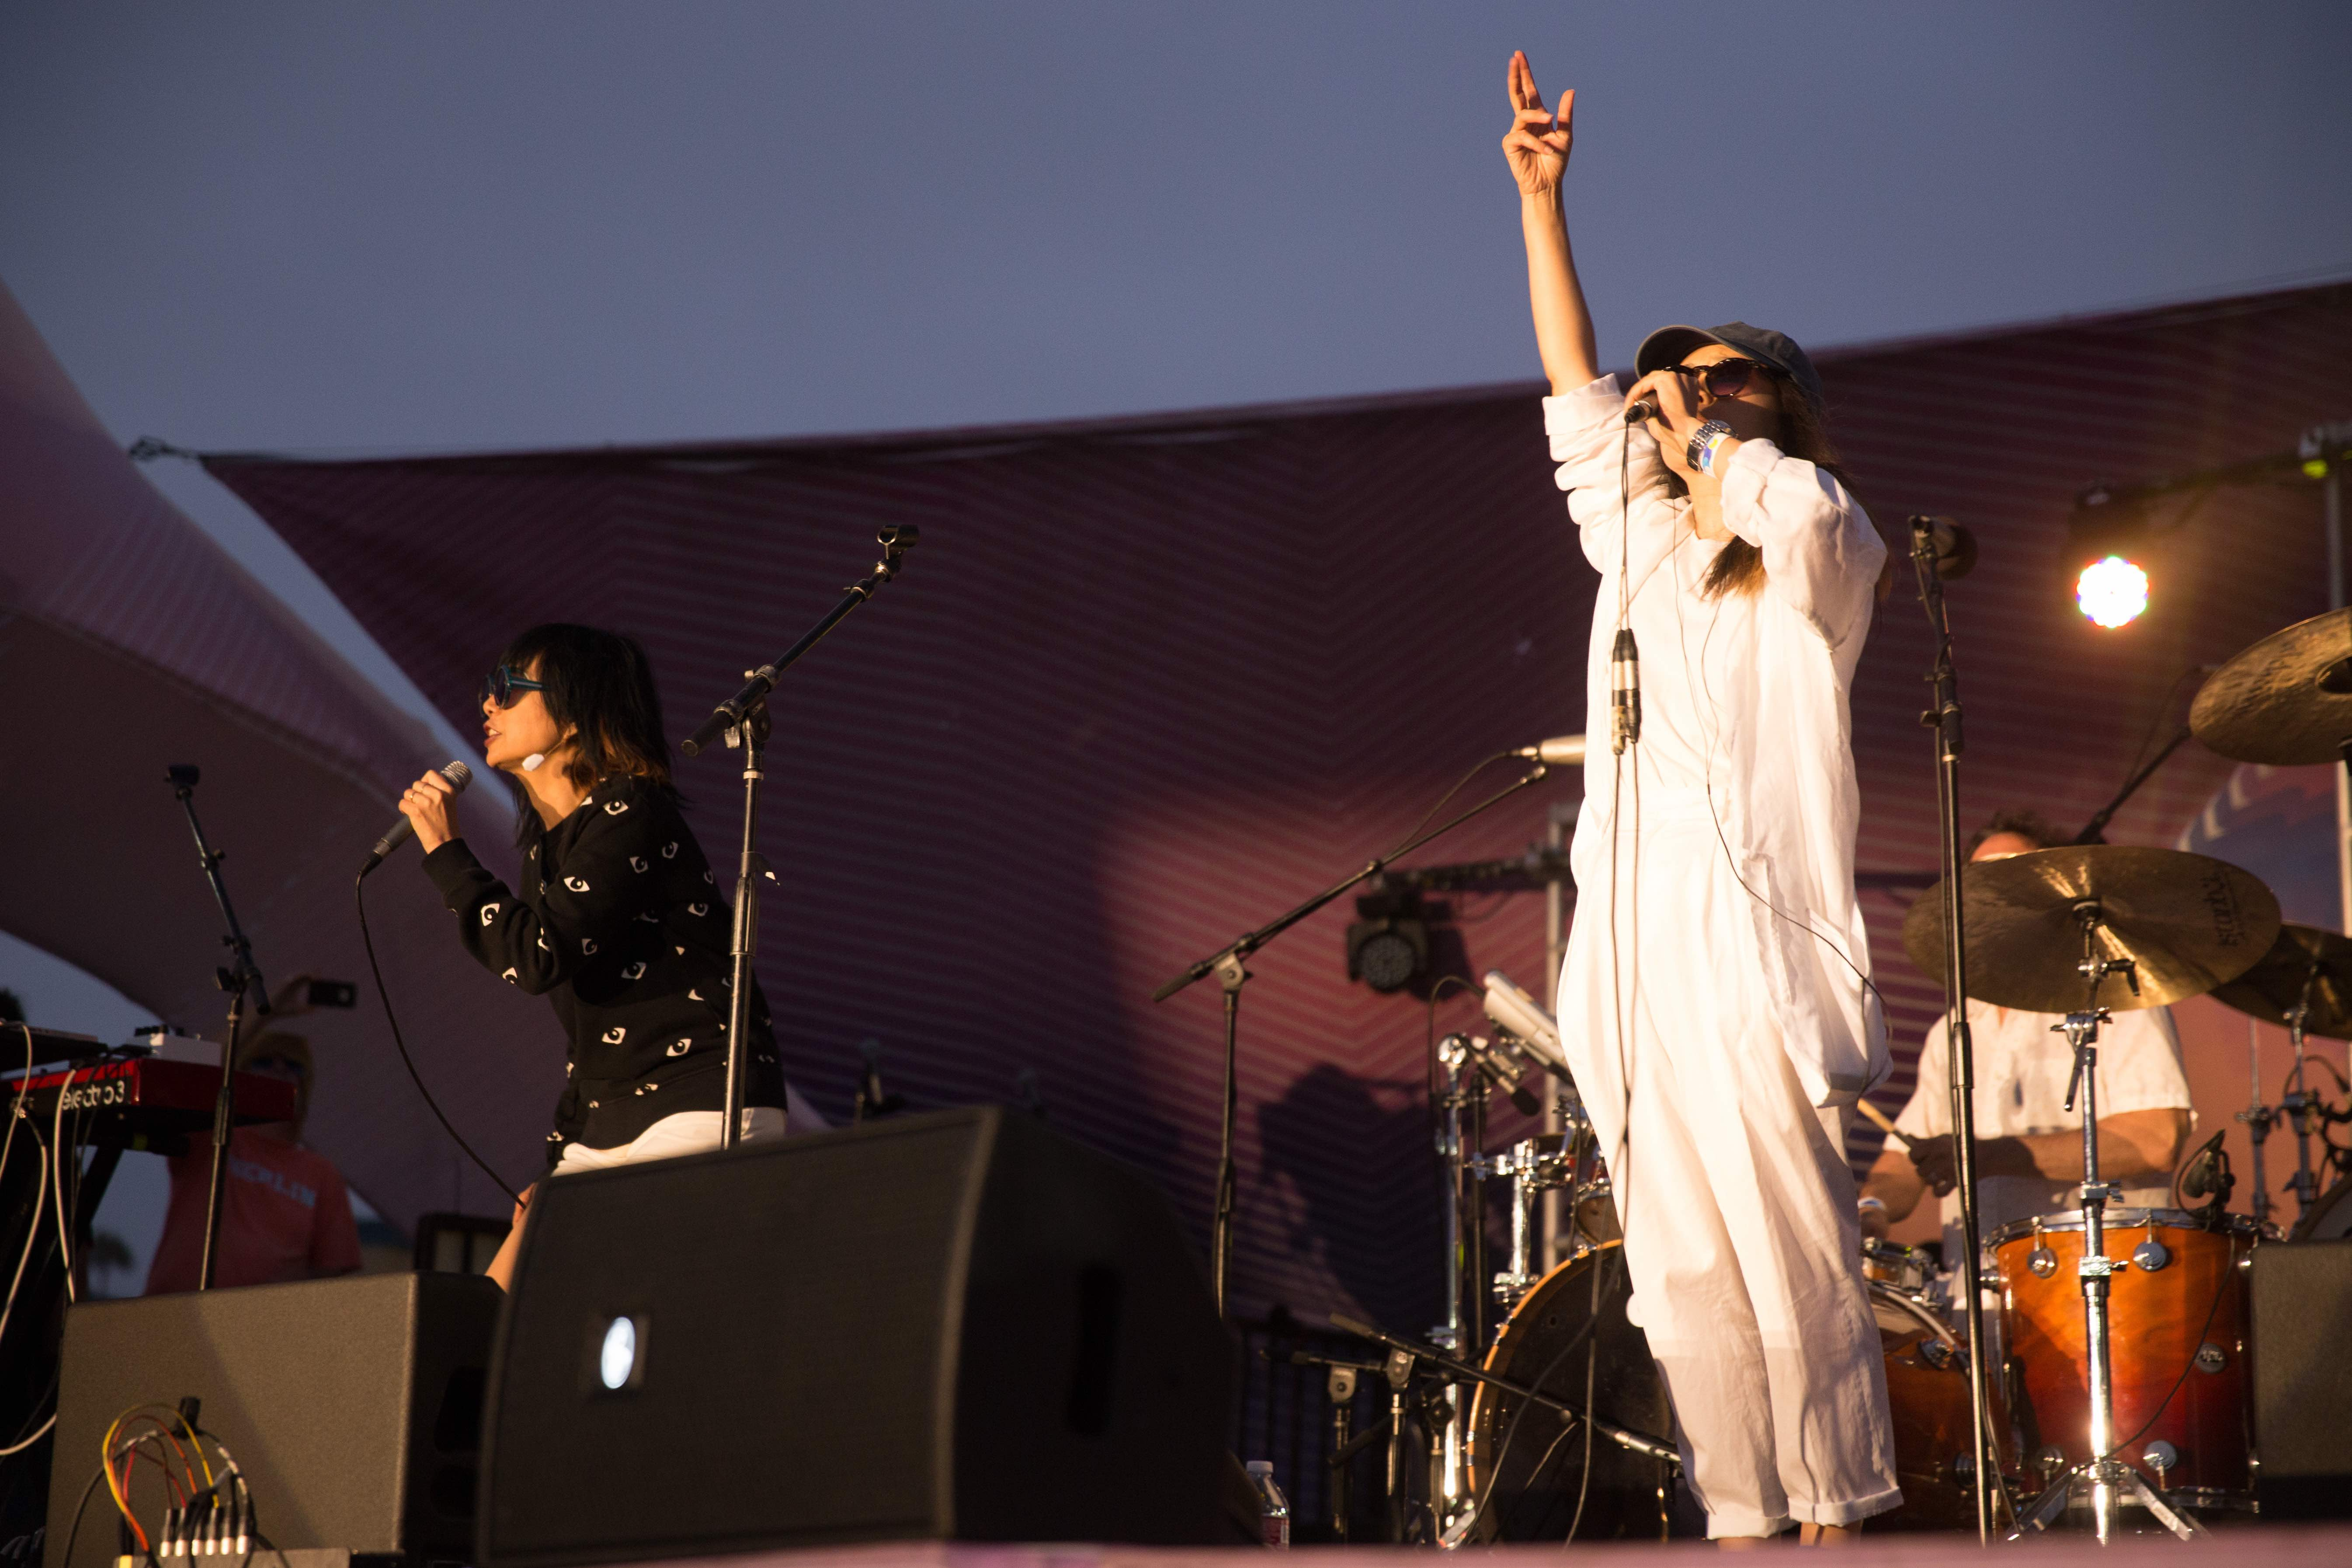 Cibo Matto at Santa Monica Pier's Twilight Concert 8/25/16. Photo by Elise Hillinger (@Ela_Fauxtow) for www.BlurredCulture.com.